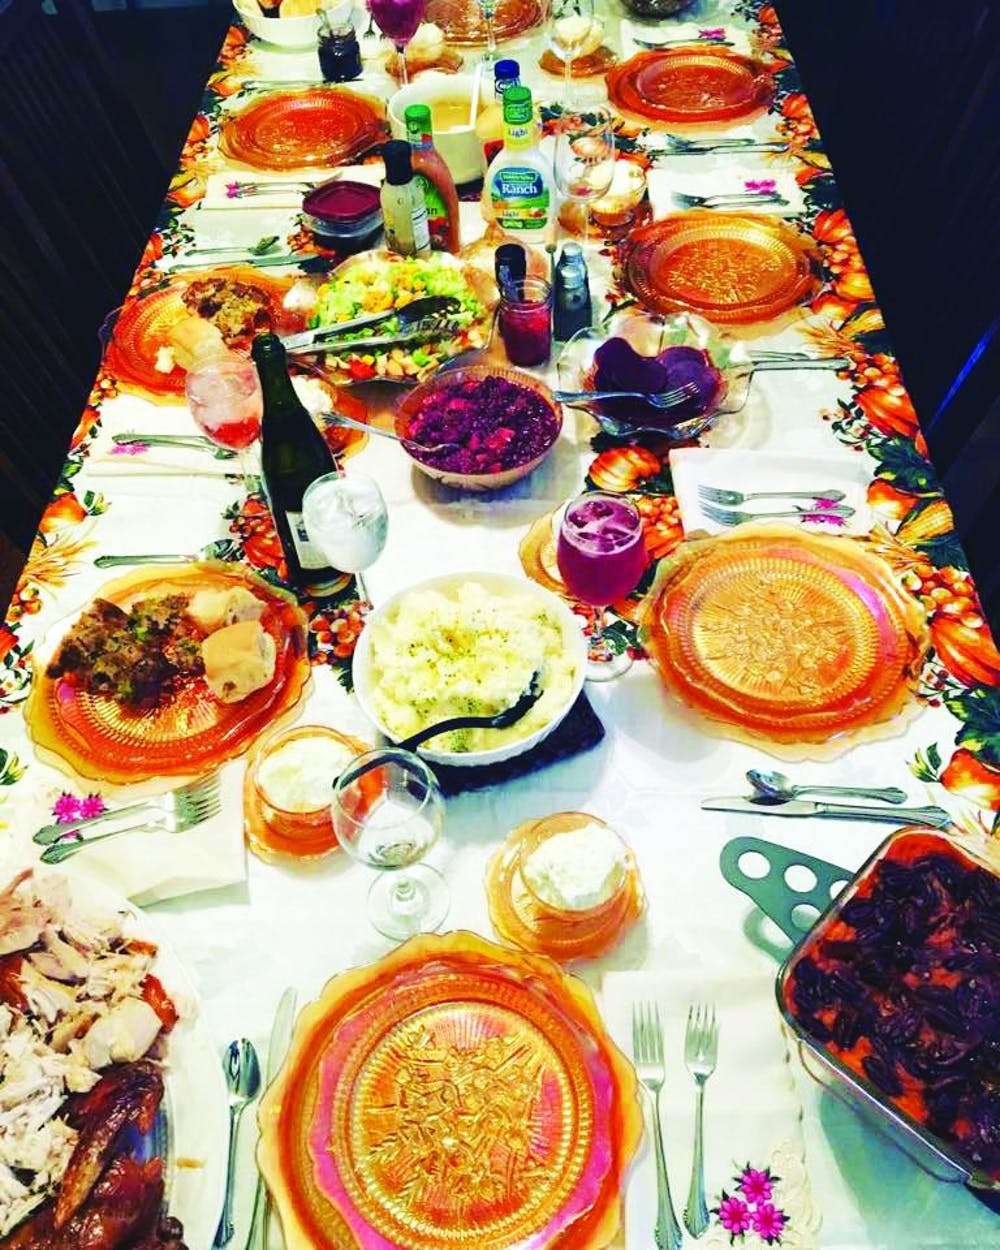 Rethinking the Thanksgiving table